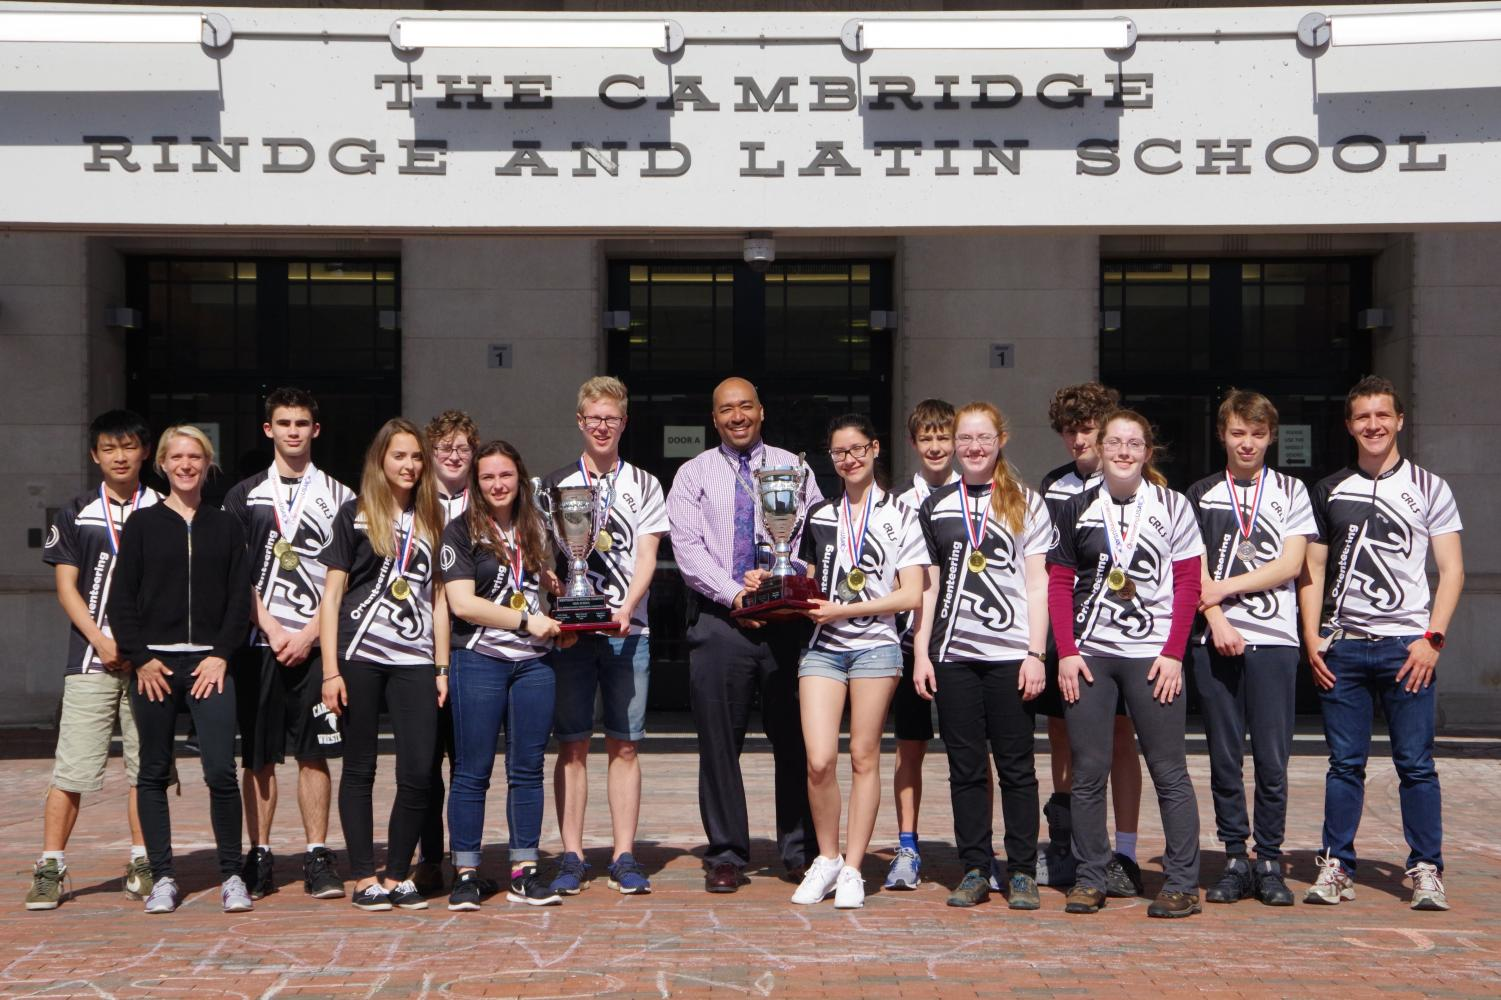 Eight Rindge students from the orienteering team placed nationally in the U.S. Junior National Championships this April.